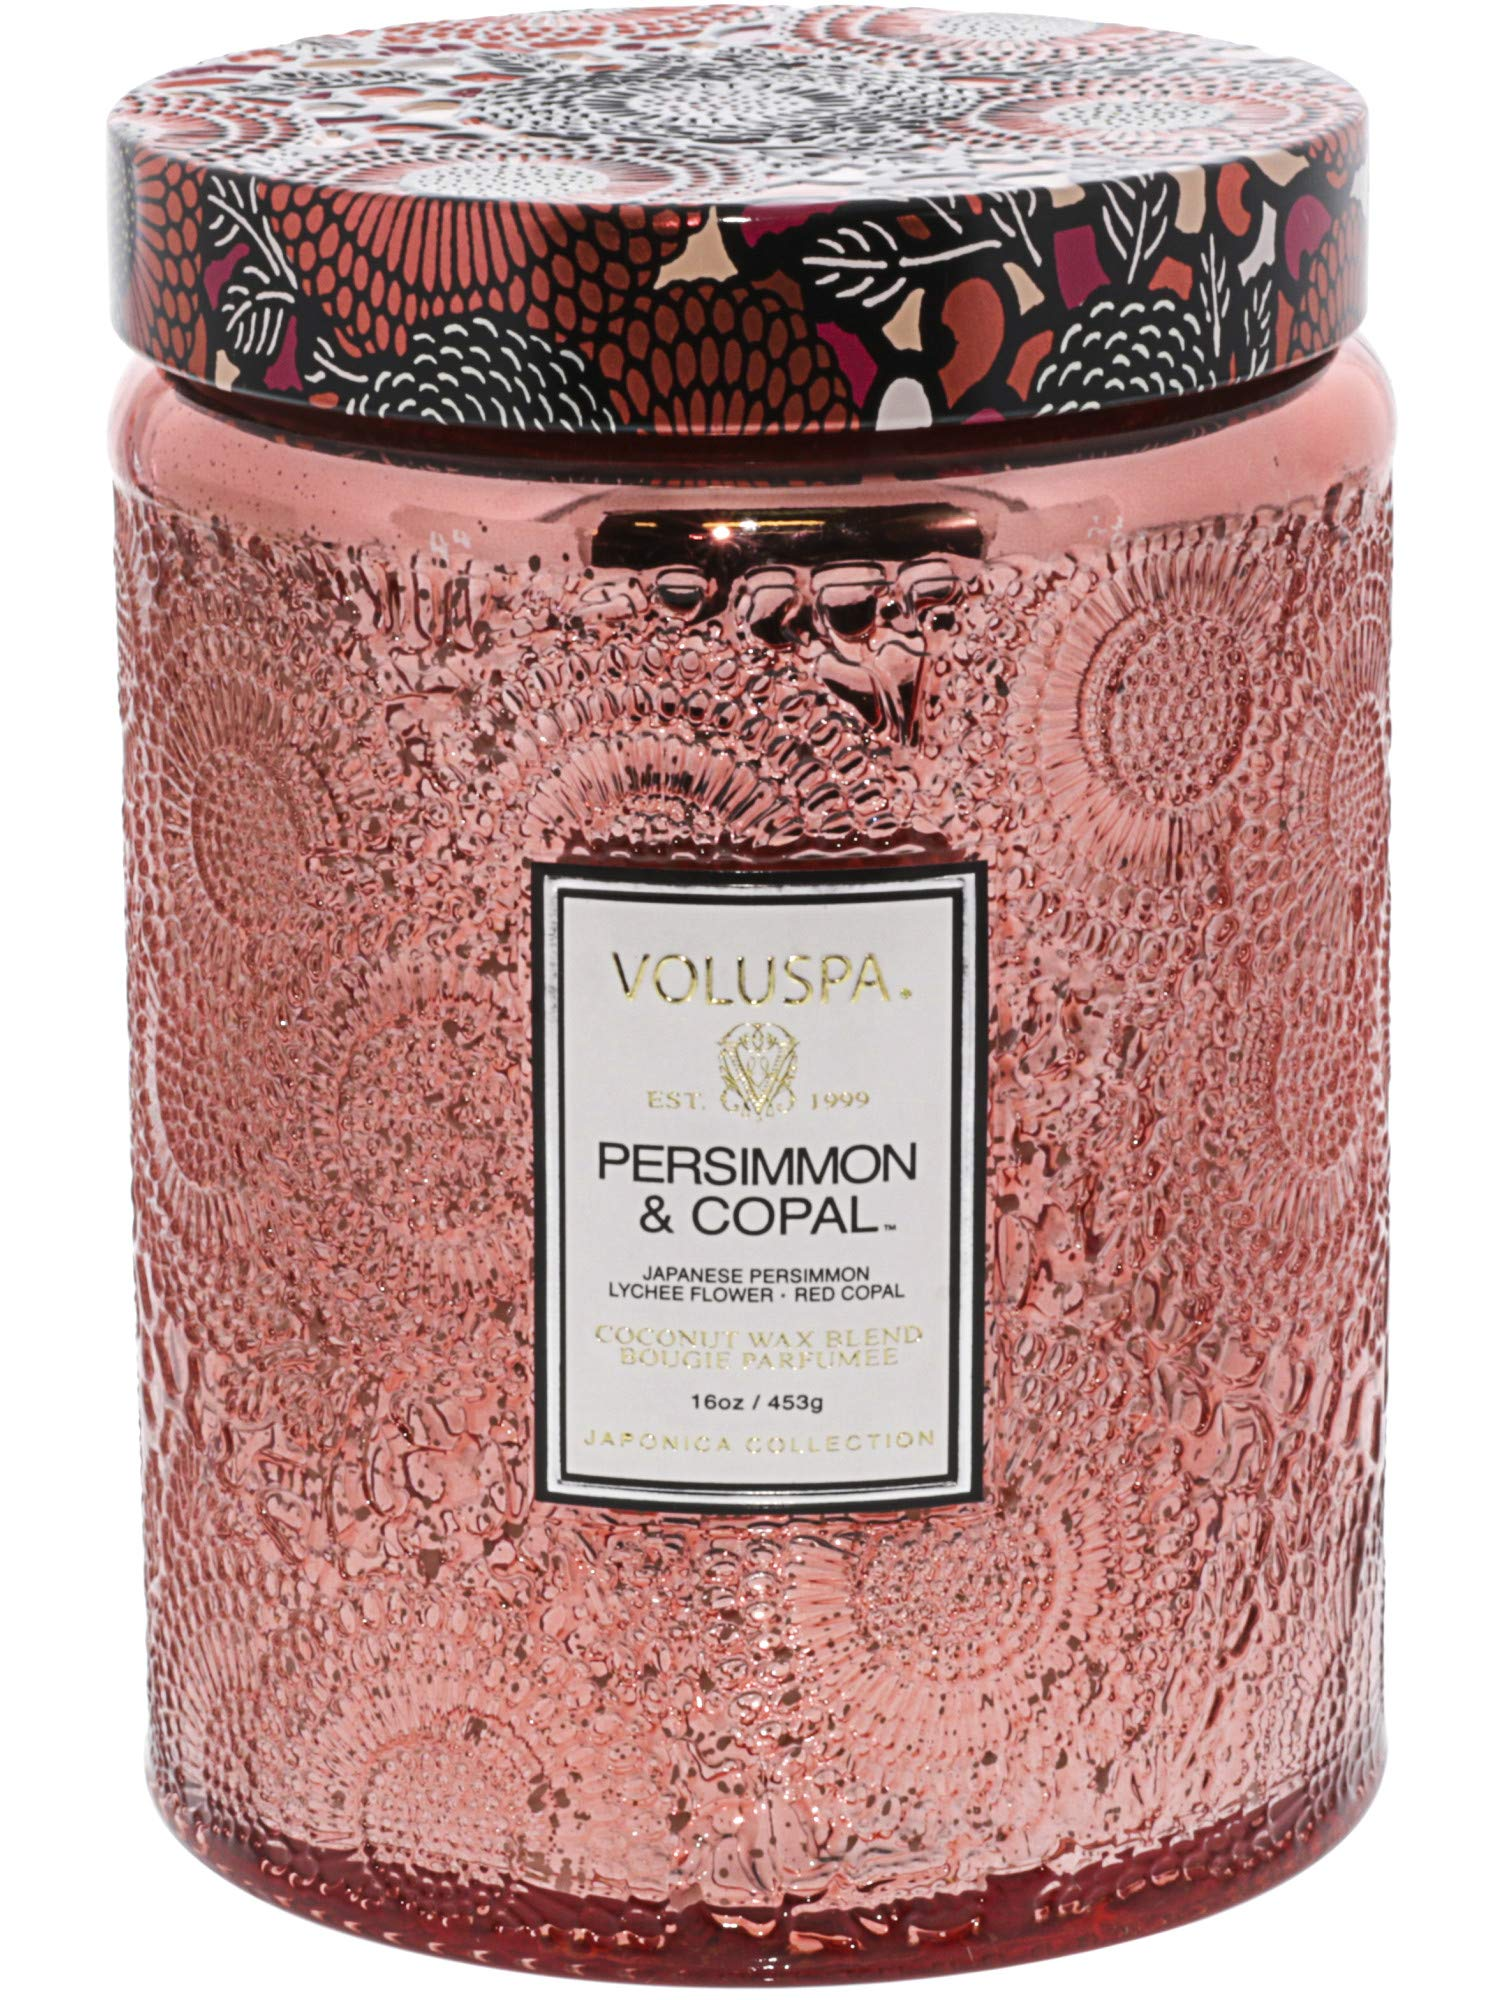 Voluspa Persimmon and Copal Large Glass Jar Candle, 16 Ounce